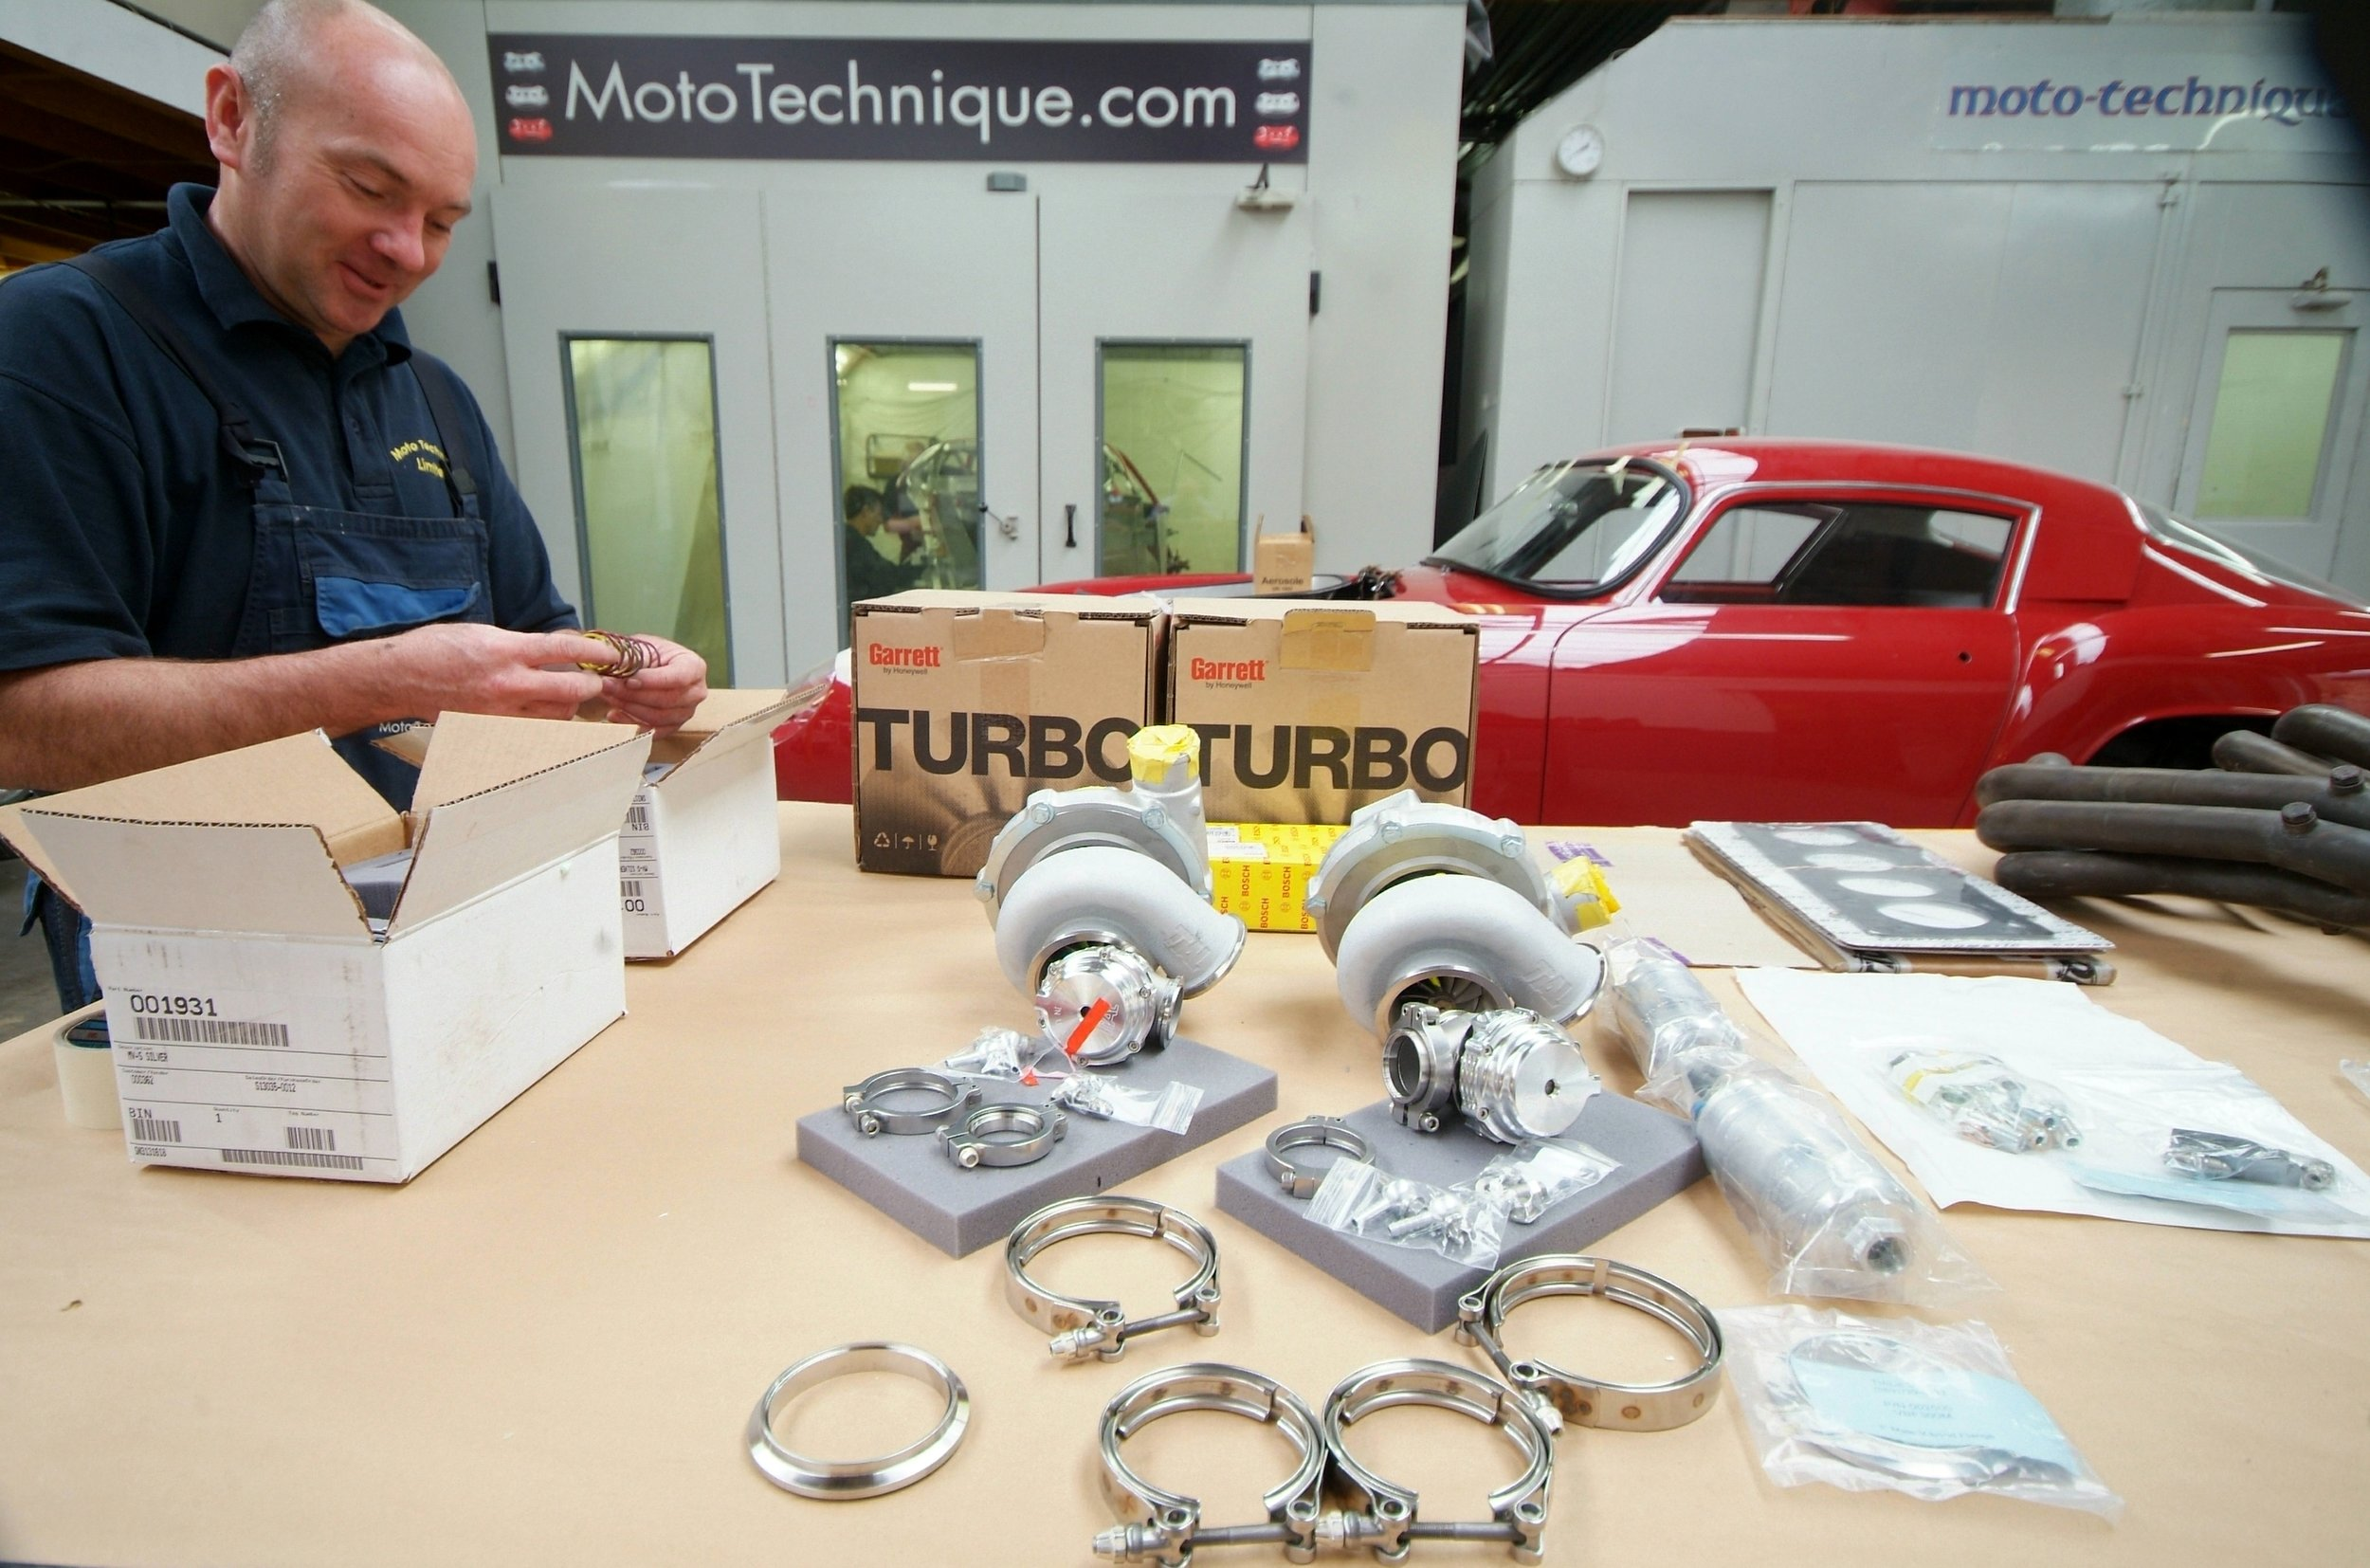 Turbo chargers being unpacked and inspected prior to fitting onto an upgrade project.